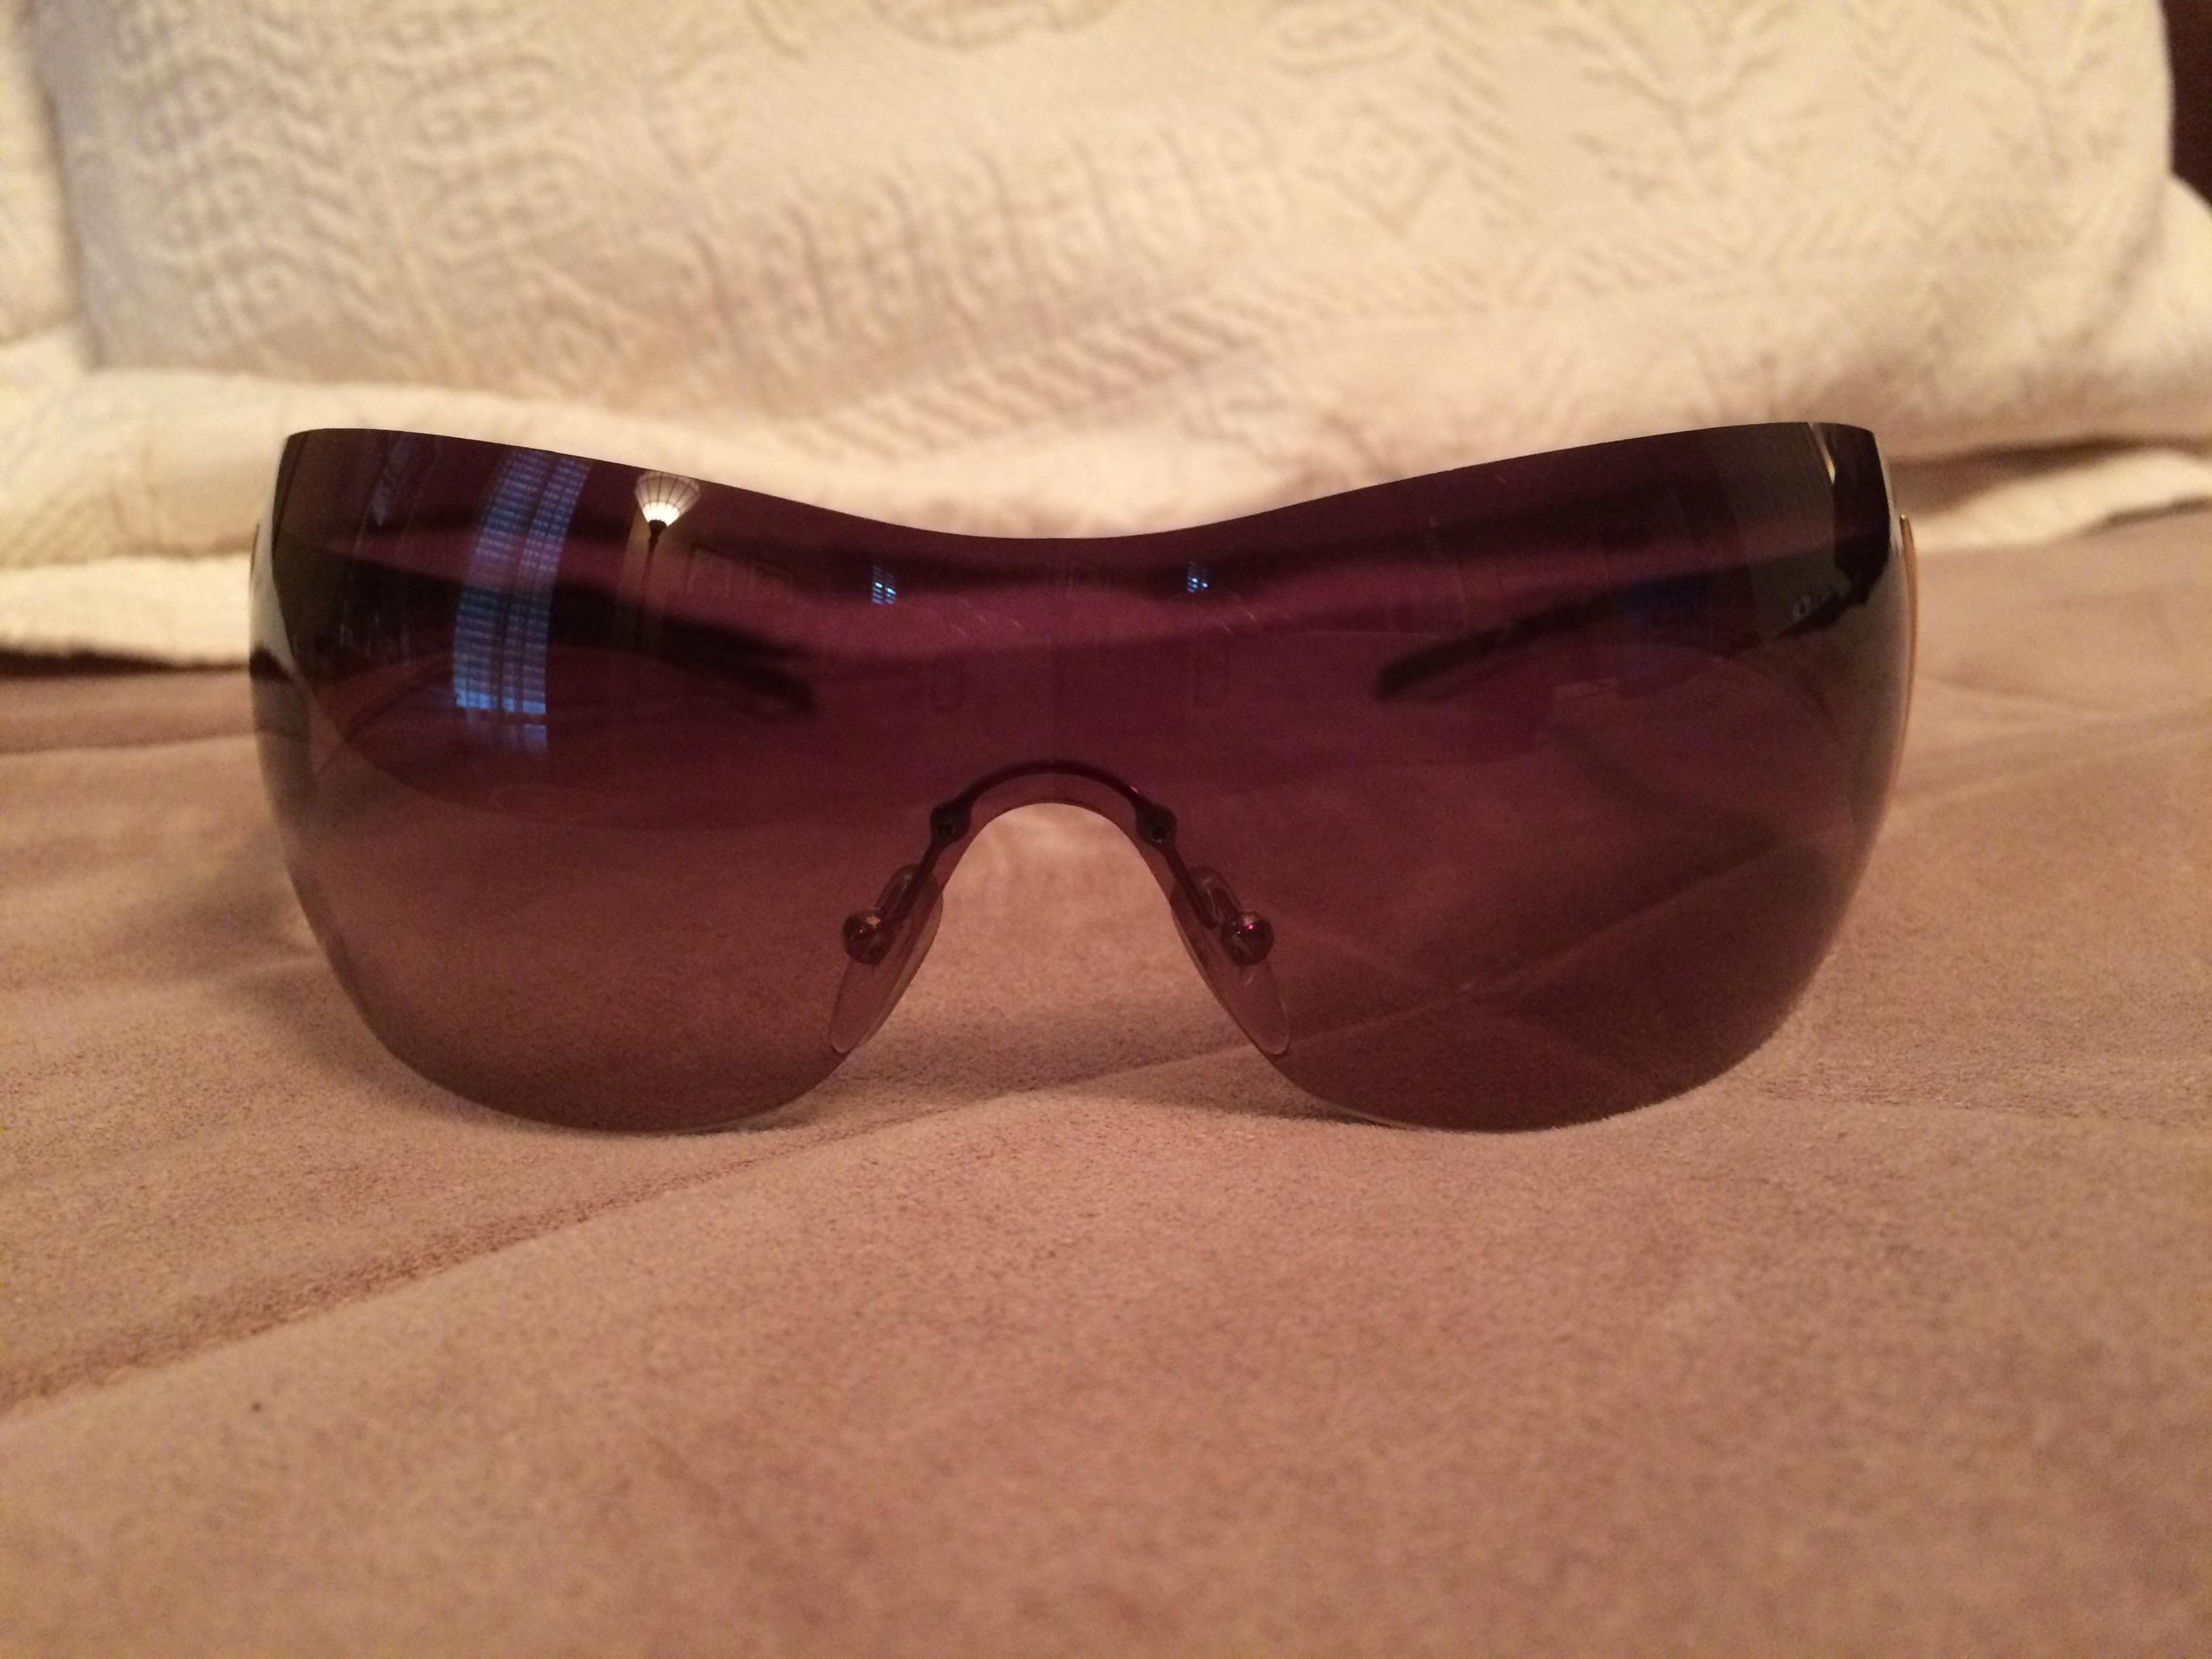 36a761f9ef79 ... promo code for prada gradient brown with gold spr 54g 5ak 2z1 115 sunglasses  tradesy 8553c ...